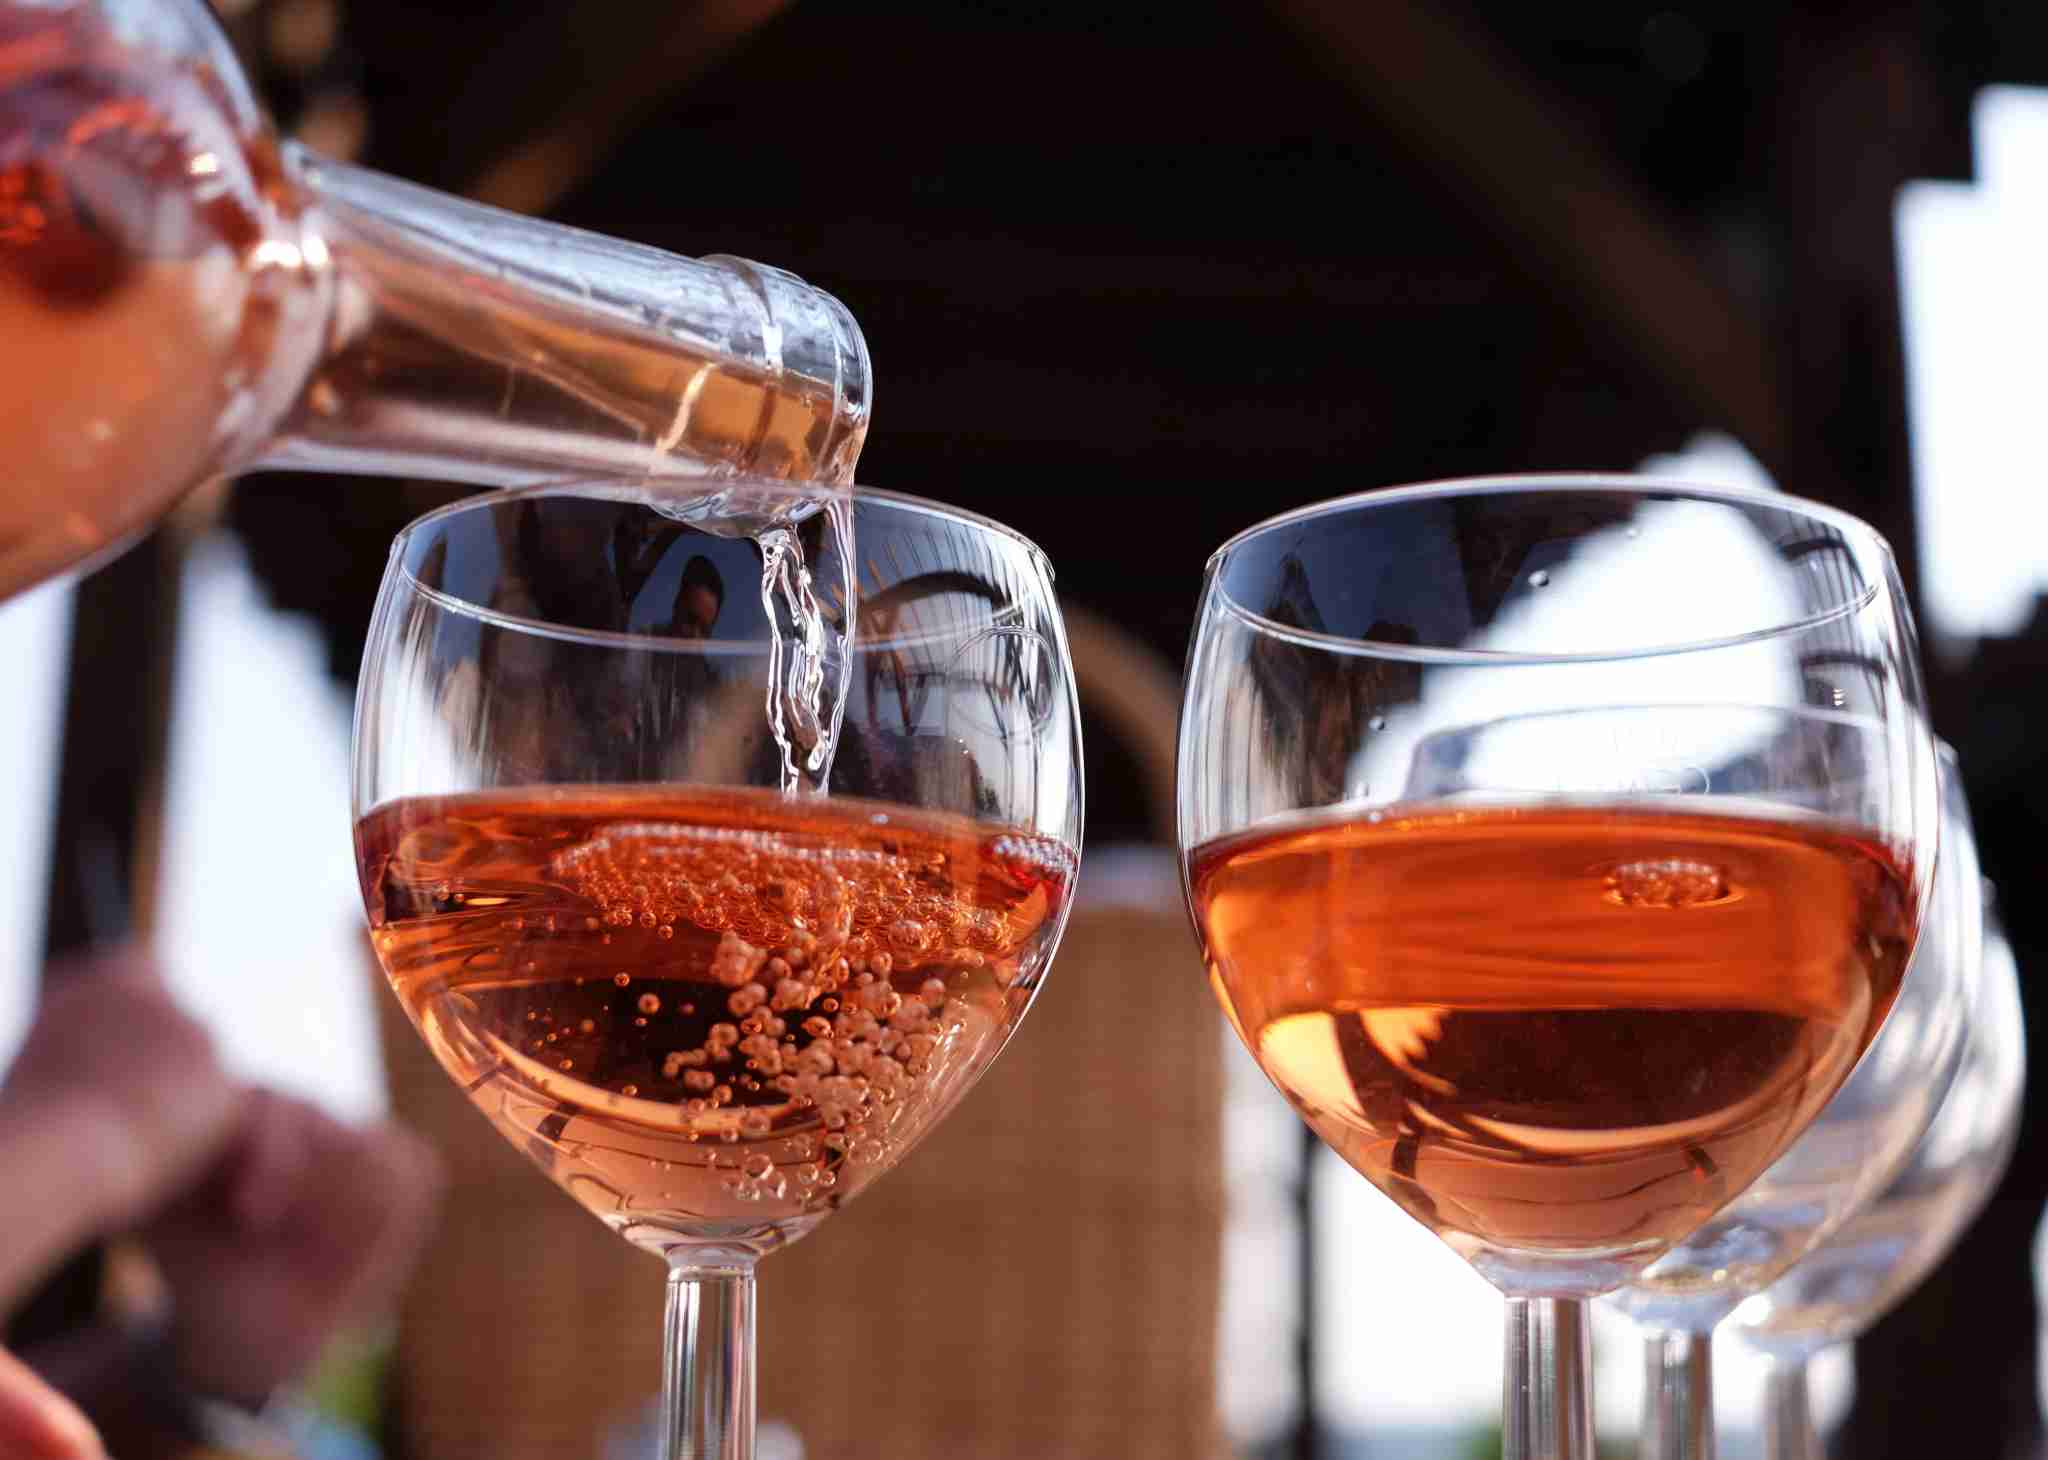 Rosé wine is poured into glasses at vineyard Klosterhof Toplitz in the sunshine in Toplitz, Germany, 10 September 2016. The ecologically managed vineyard has 2.5 hectars of land and a tavern selling homegrown vine. Pinot gris and pinot blanc, riesling and regent are cultivated here. Photo: Jens Kalaene/dpa   usage worldwide (Photo by Jens Kalaene/picture alliance via Getty Images)